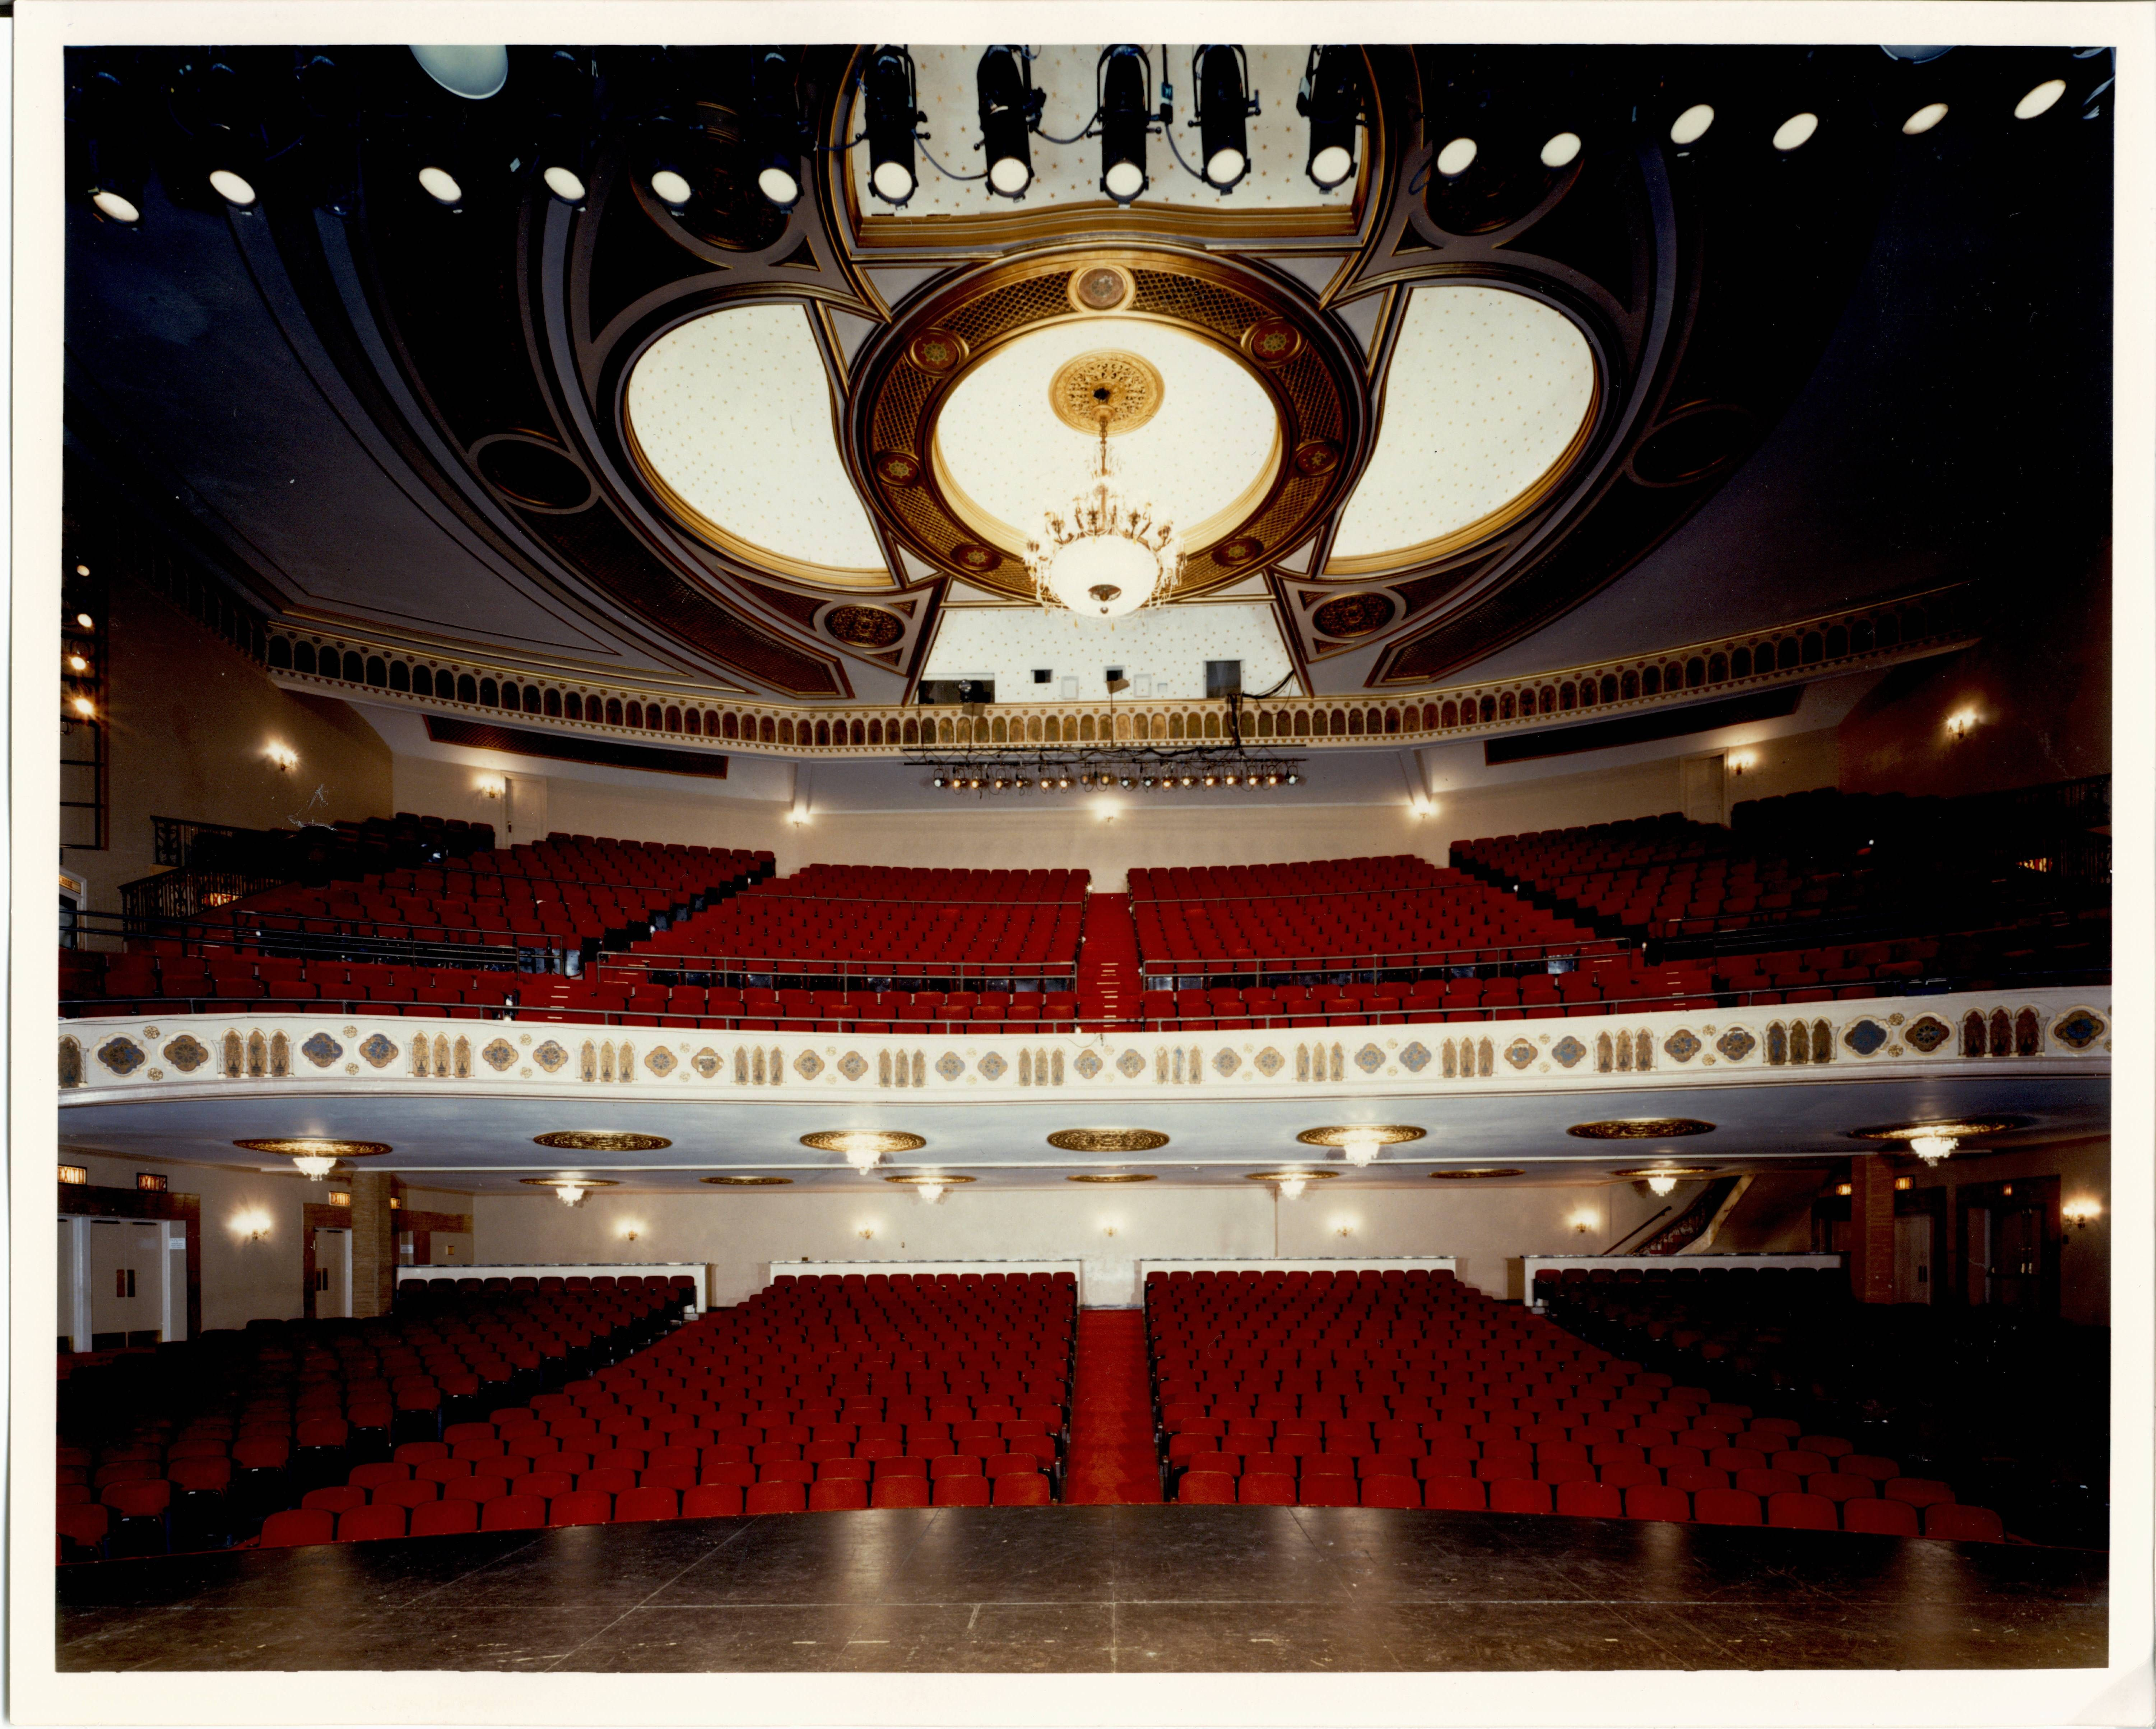 A view of the Main Auditorium from The Harman Stage Capacity 1 584 seats The